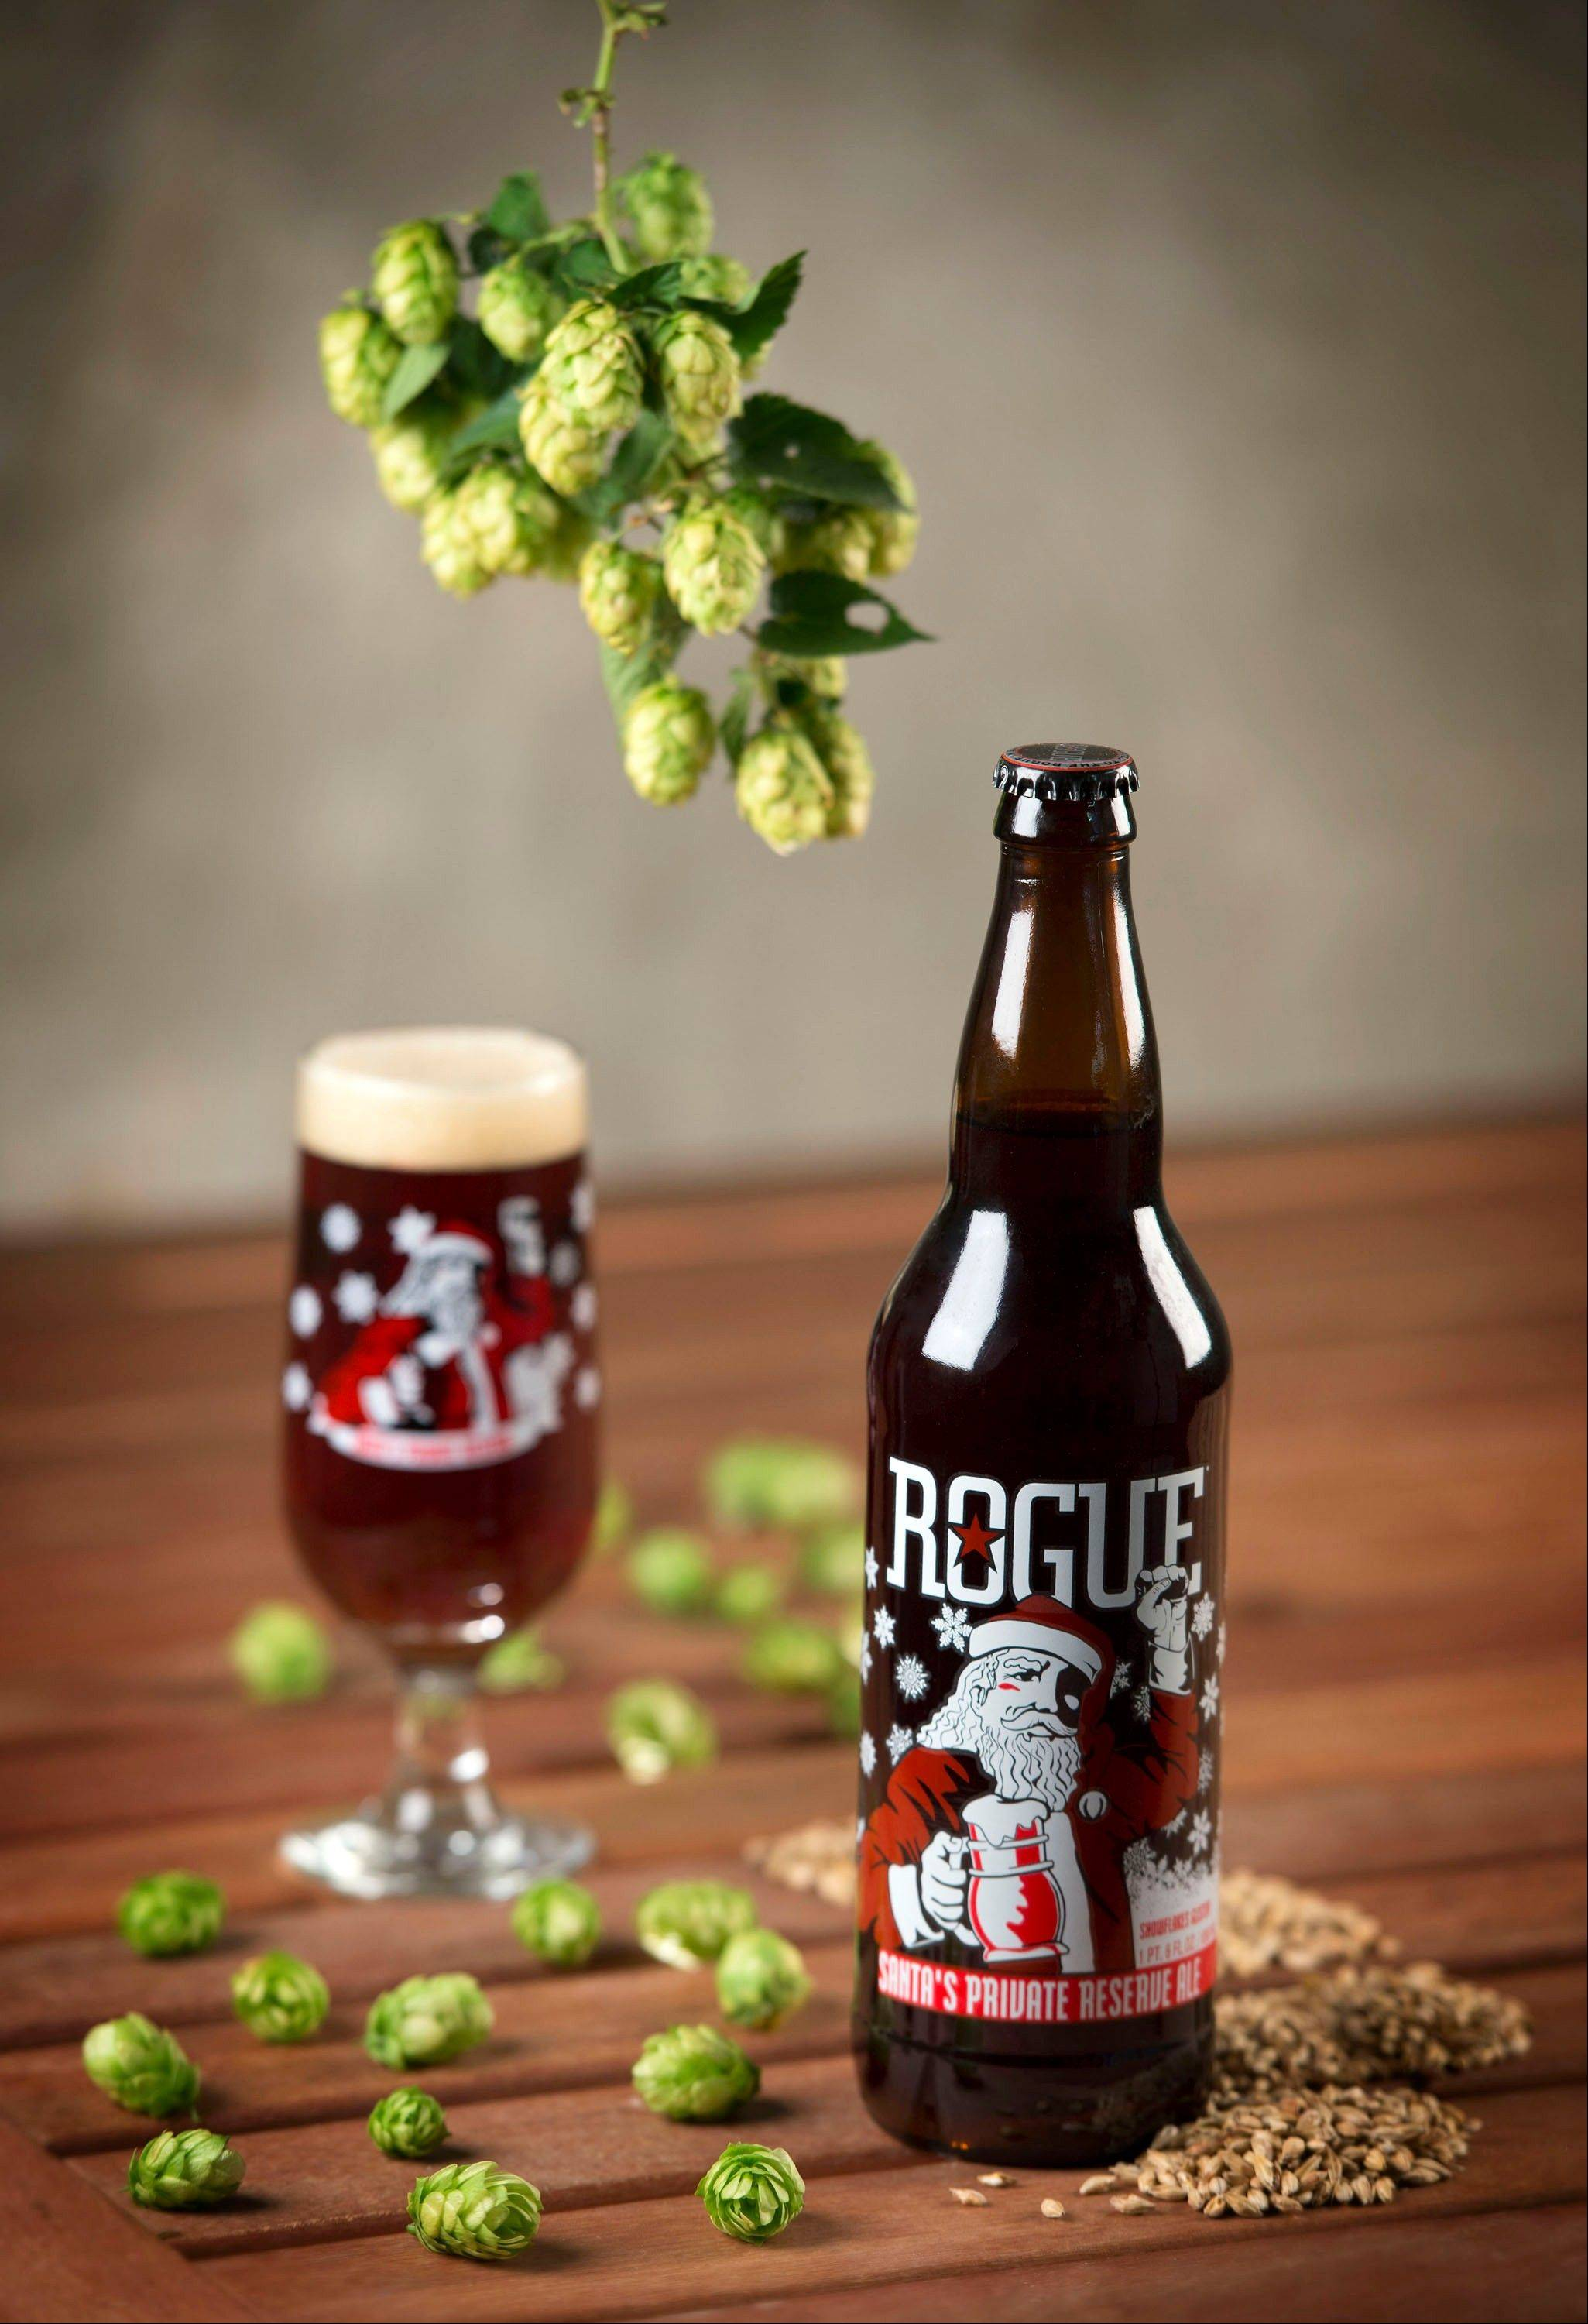 Rogue Ales's Santa's Private Reserve is a two-time World Beer Championship gold medal-winning amber beer with a roasted caramel malt flavor and a hoppy pine finish.